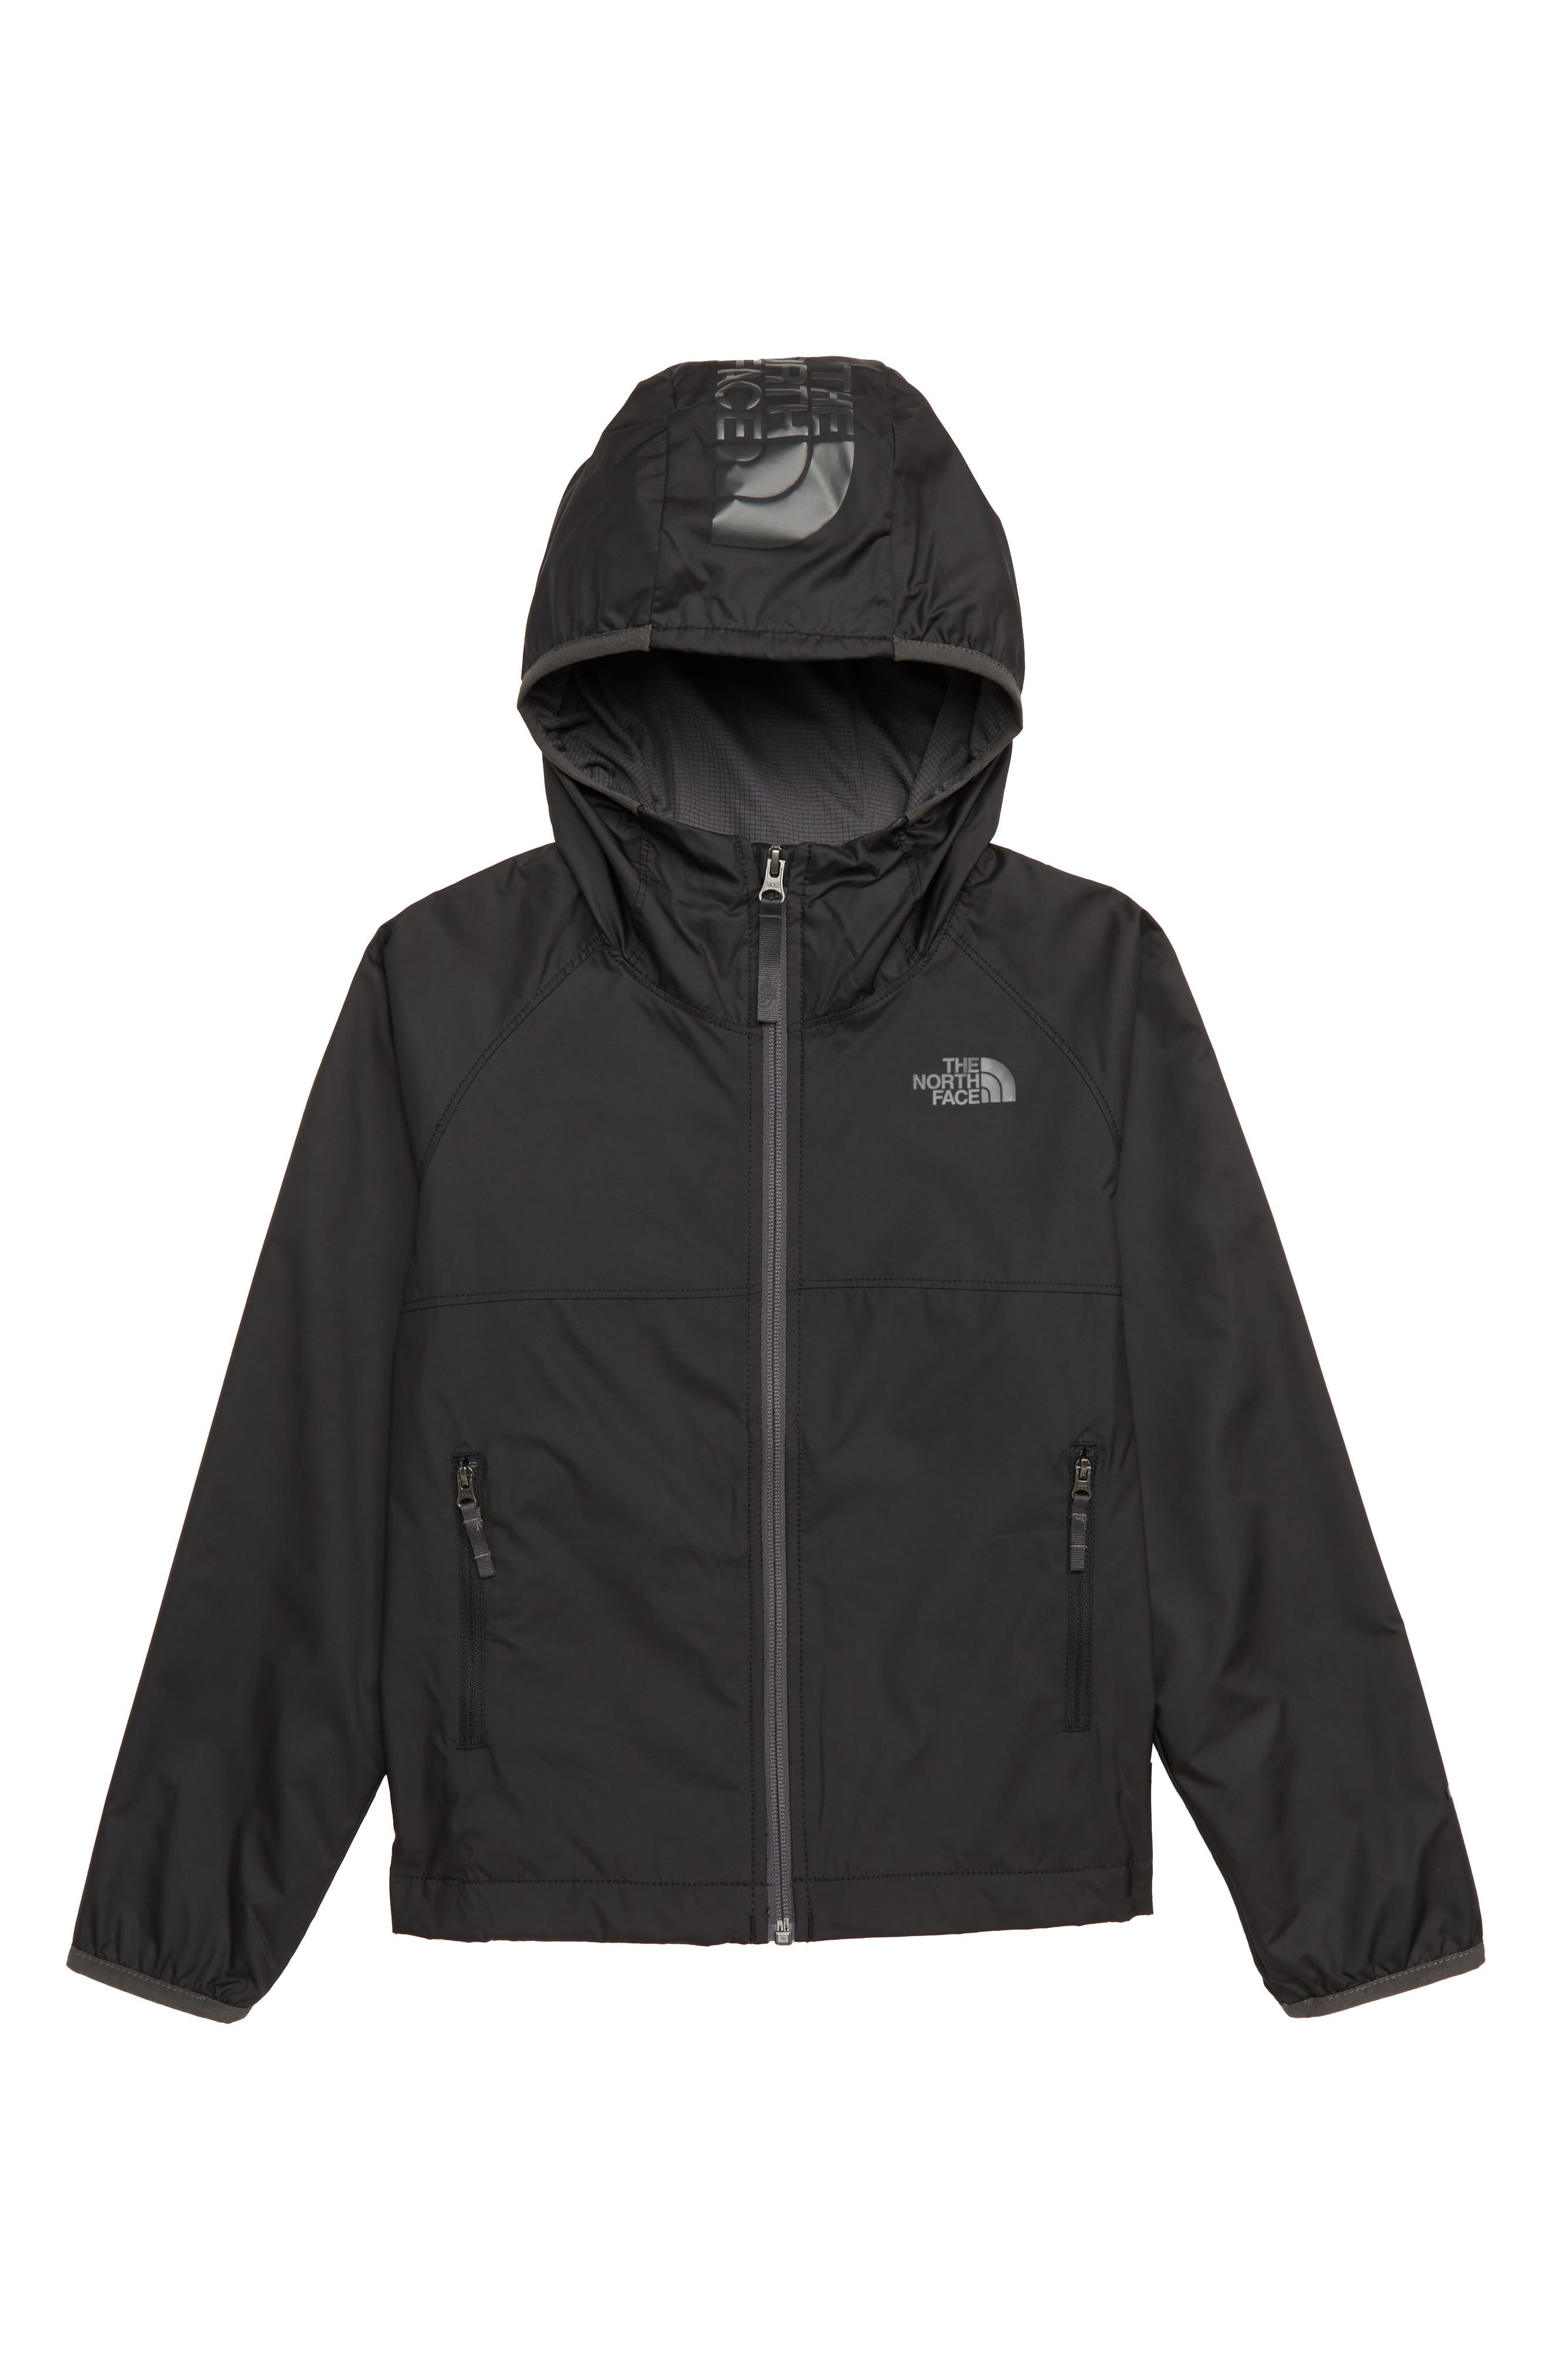 THE NORTH FACE, Windy Crest Water Repellent Jacket, Main thumbnail 1, color, BLACK